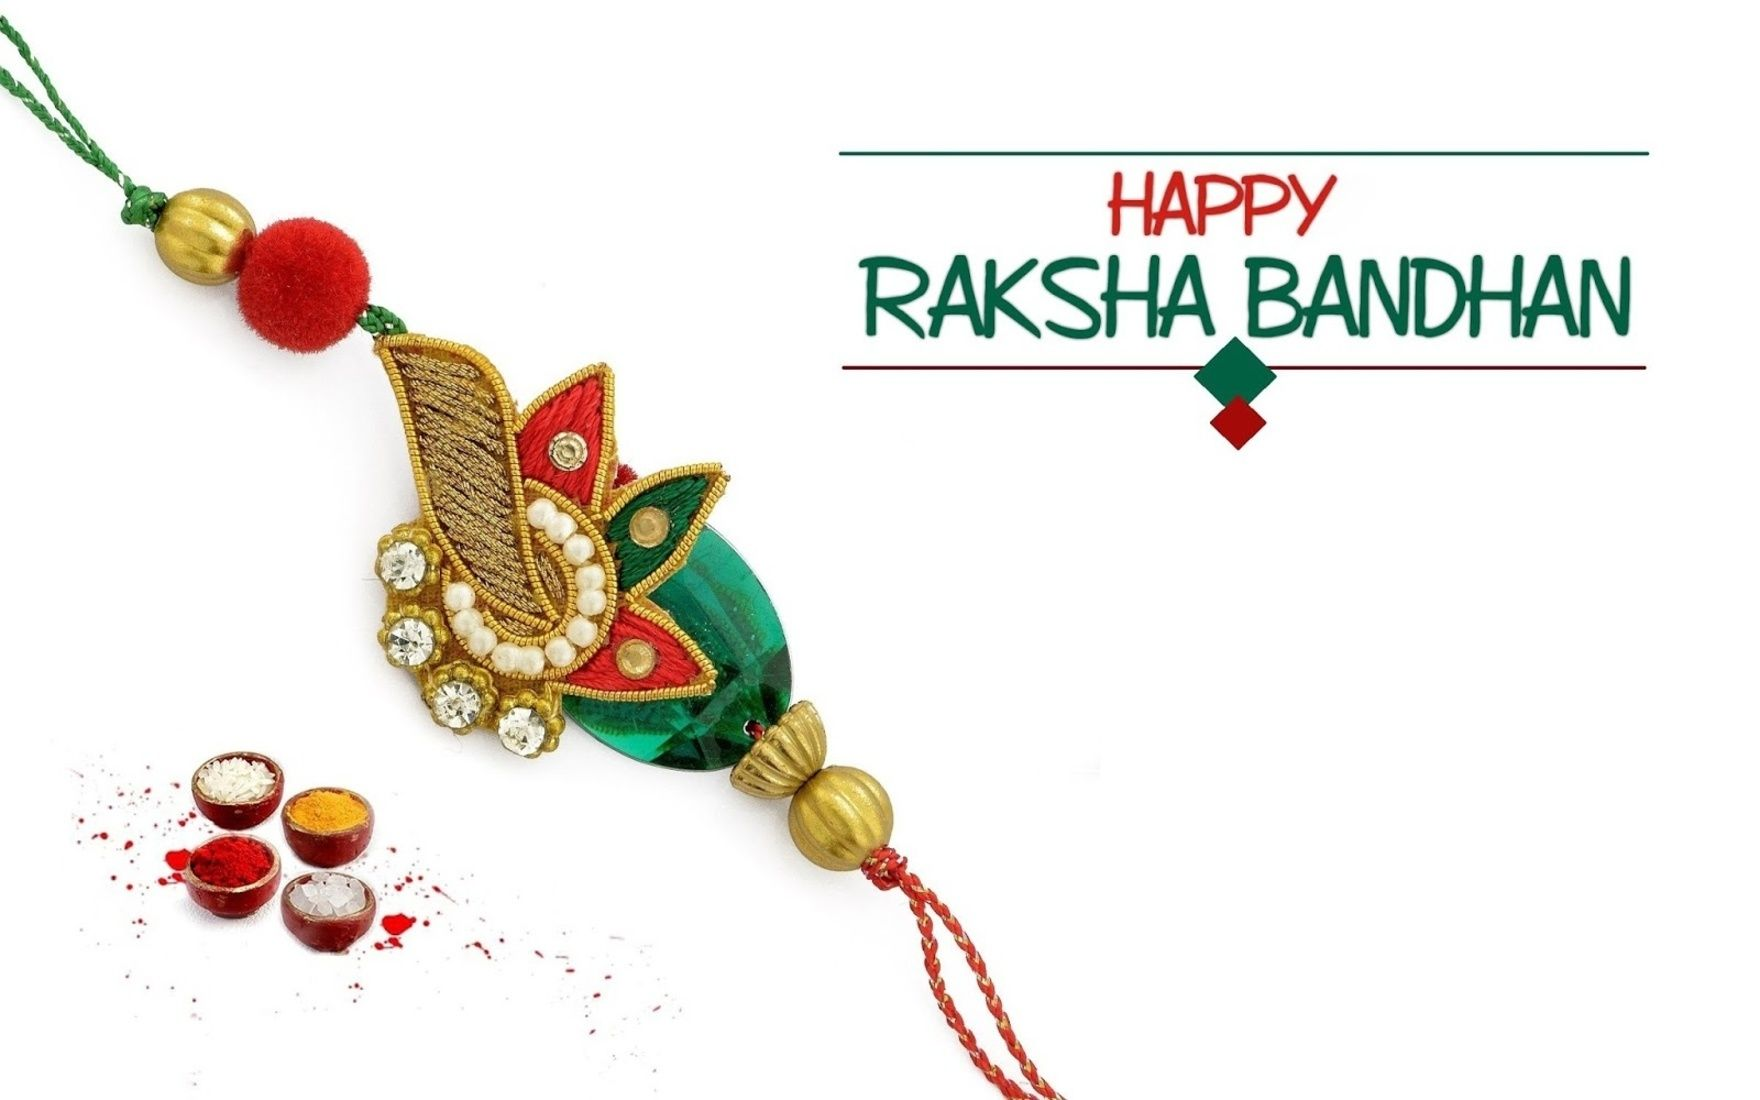 Wishing All The Brothers And Sisters A Happy Raksha Bandhan From